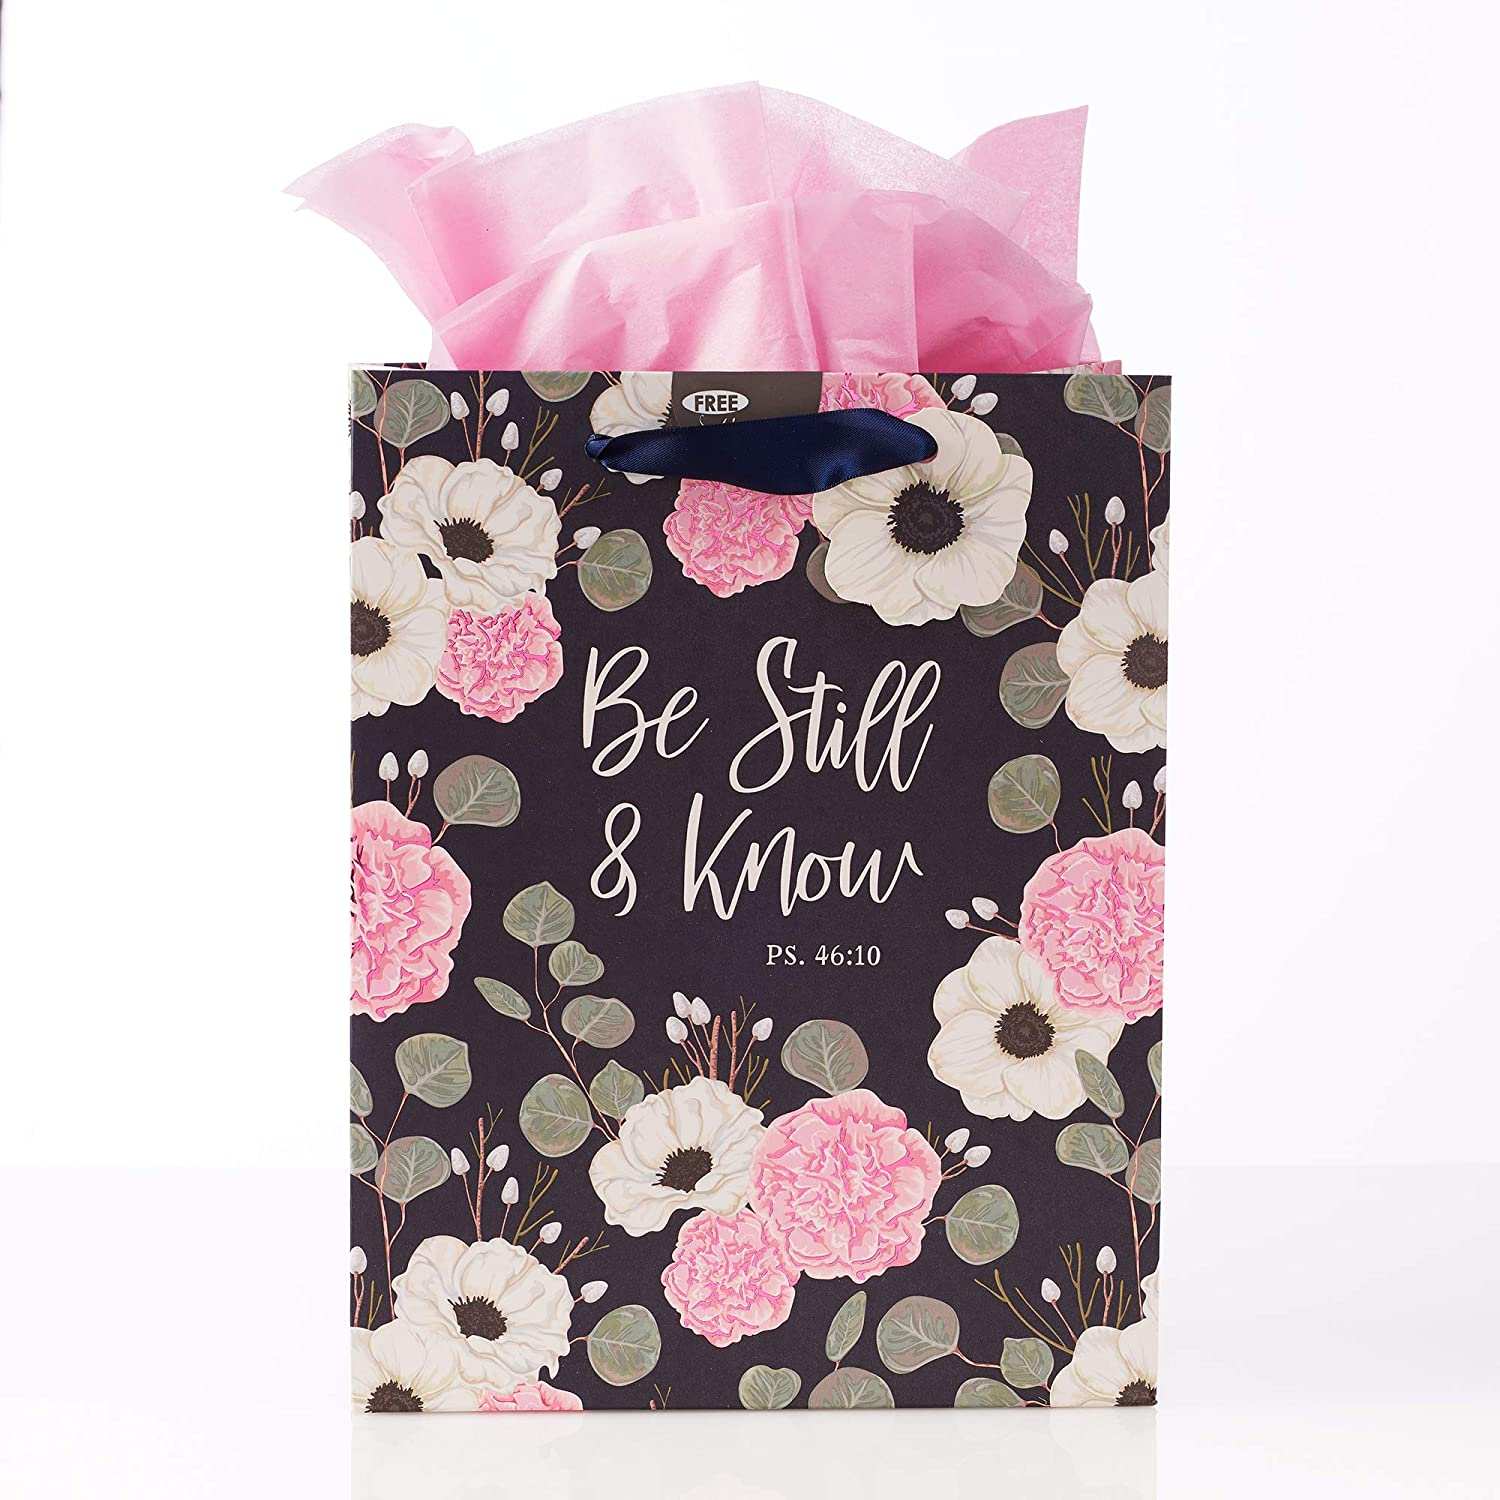 Christian Art Gifts White/Pink Flowers Gift Bag Set | Be Still and Know Navy Floral Psalm 46:10 Bible Verse | Medium Gift Bag with Tissue Paper for Women